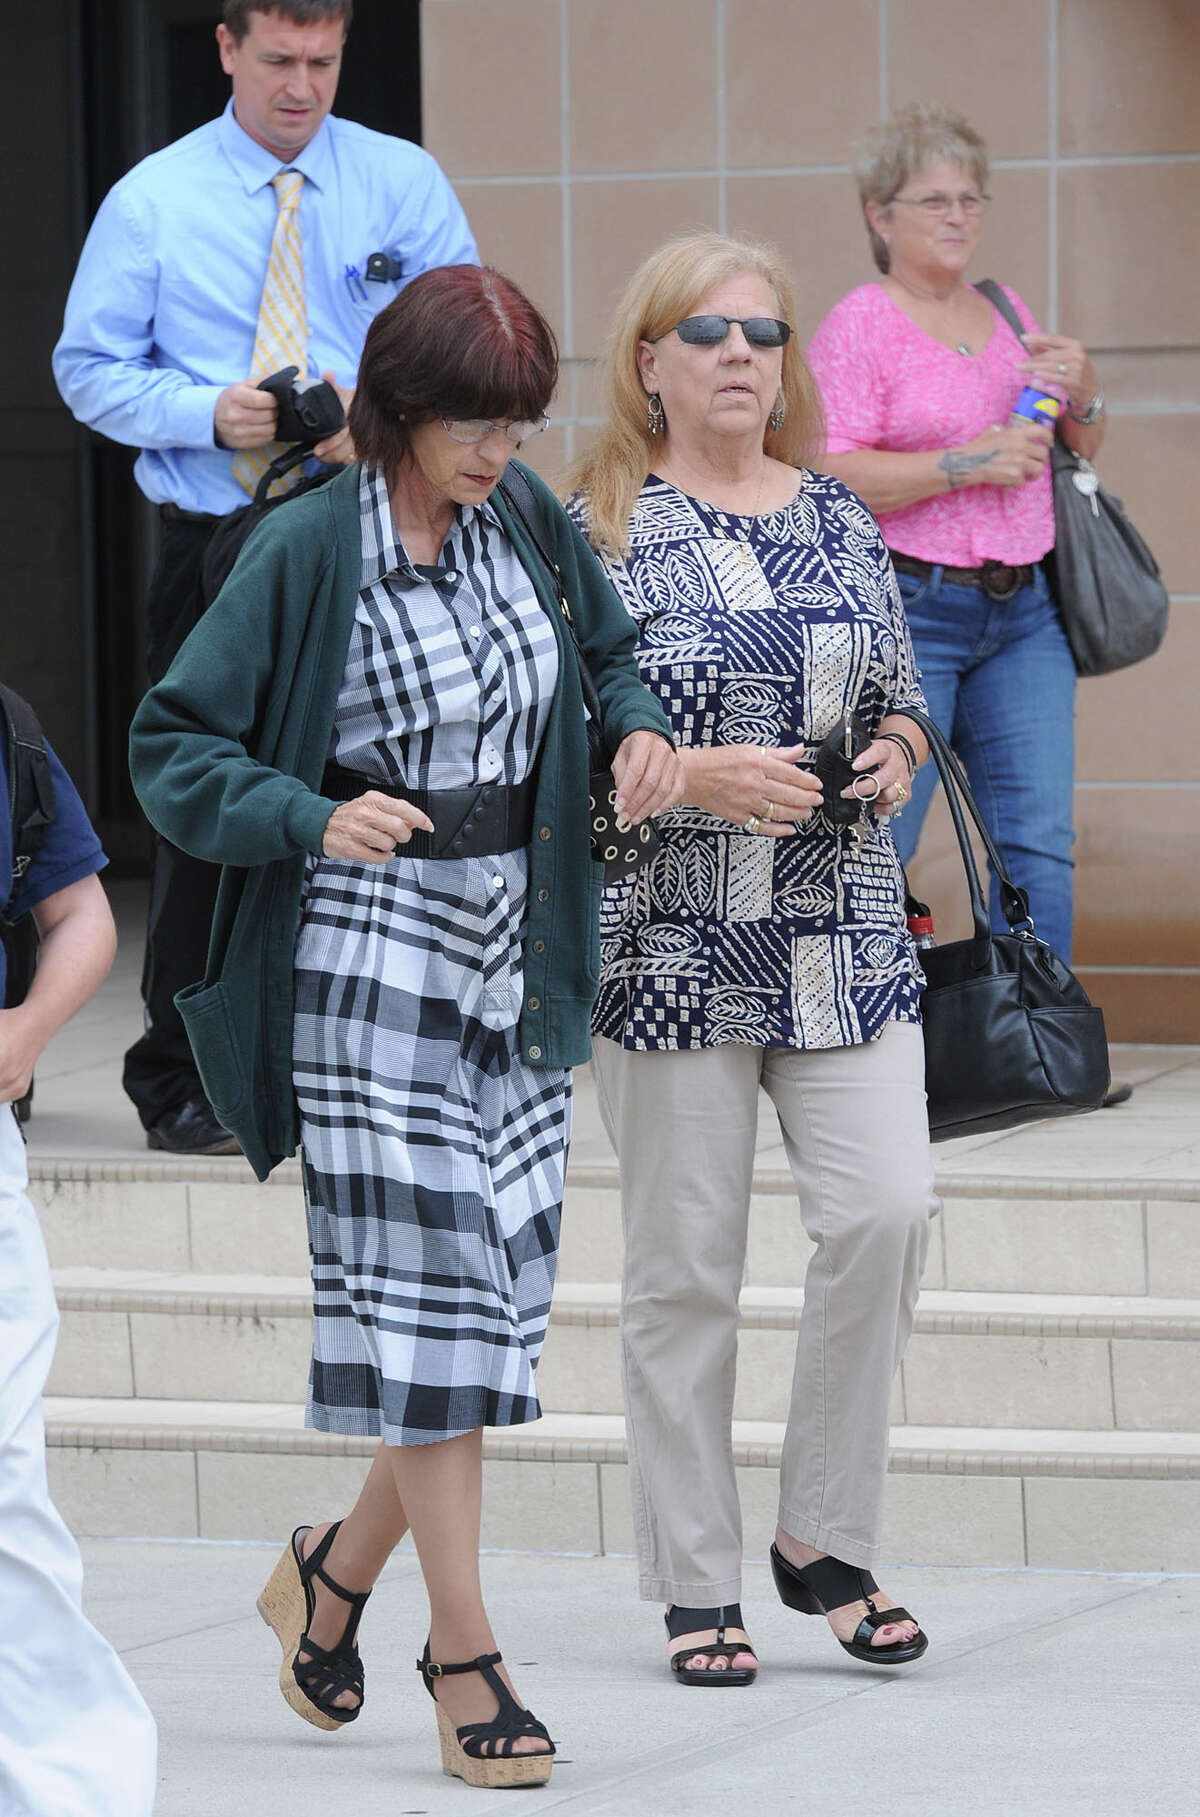 Deborah Ray Holst walks out of the Galveston County Courthouse Tuesday shortly after Bartholomew Granger was found guilty on capital murder charges from the shooting death of Holst's mother Minnie Ray Sebolt. The trial stems from the 2012 Jefferson County Courthouse Shooting. Photo taken Tuesday, April 23, 2013 Guiseppe Barranco/The Enterprise